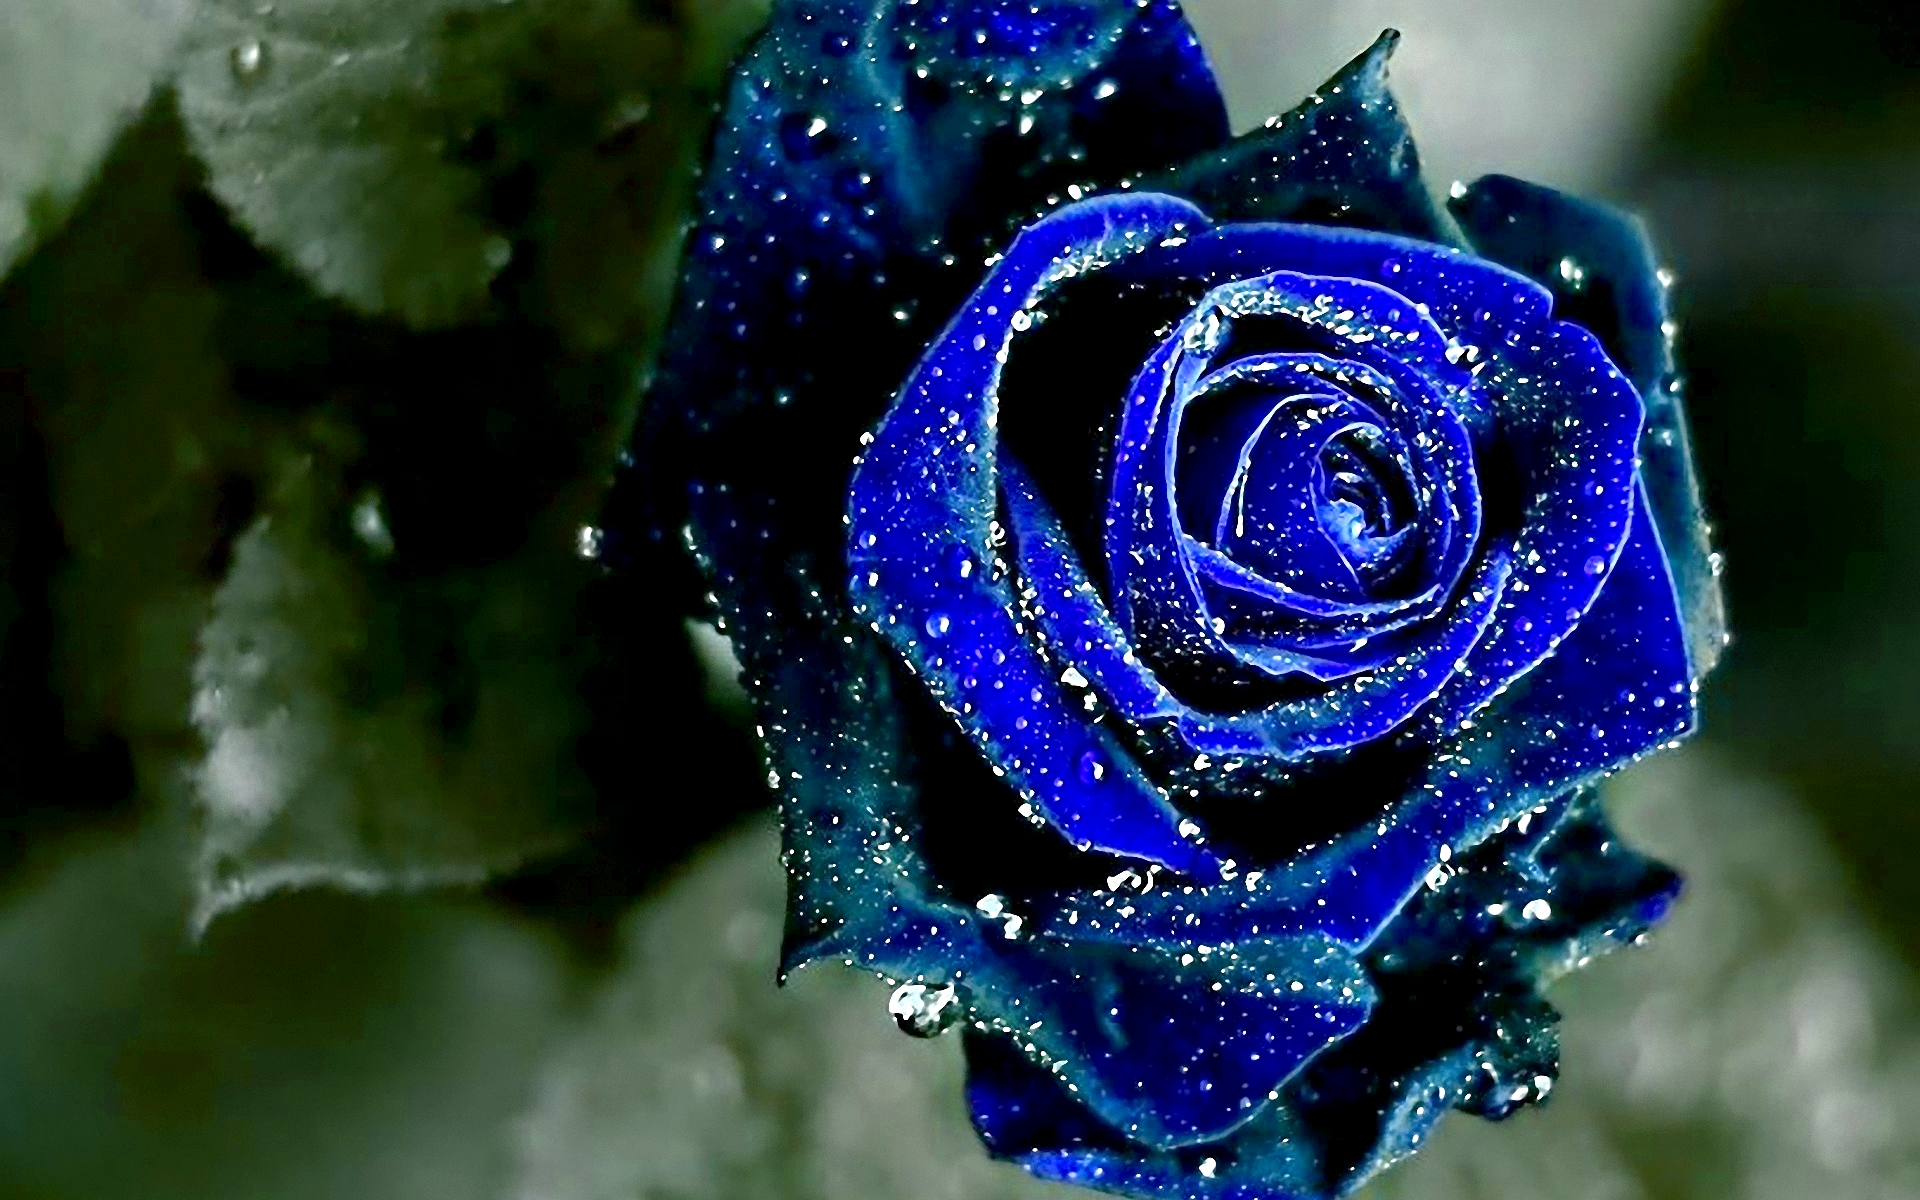 Winsome wet blue rose